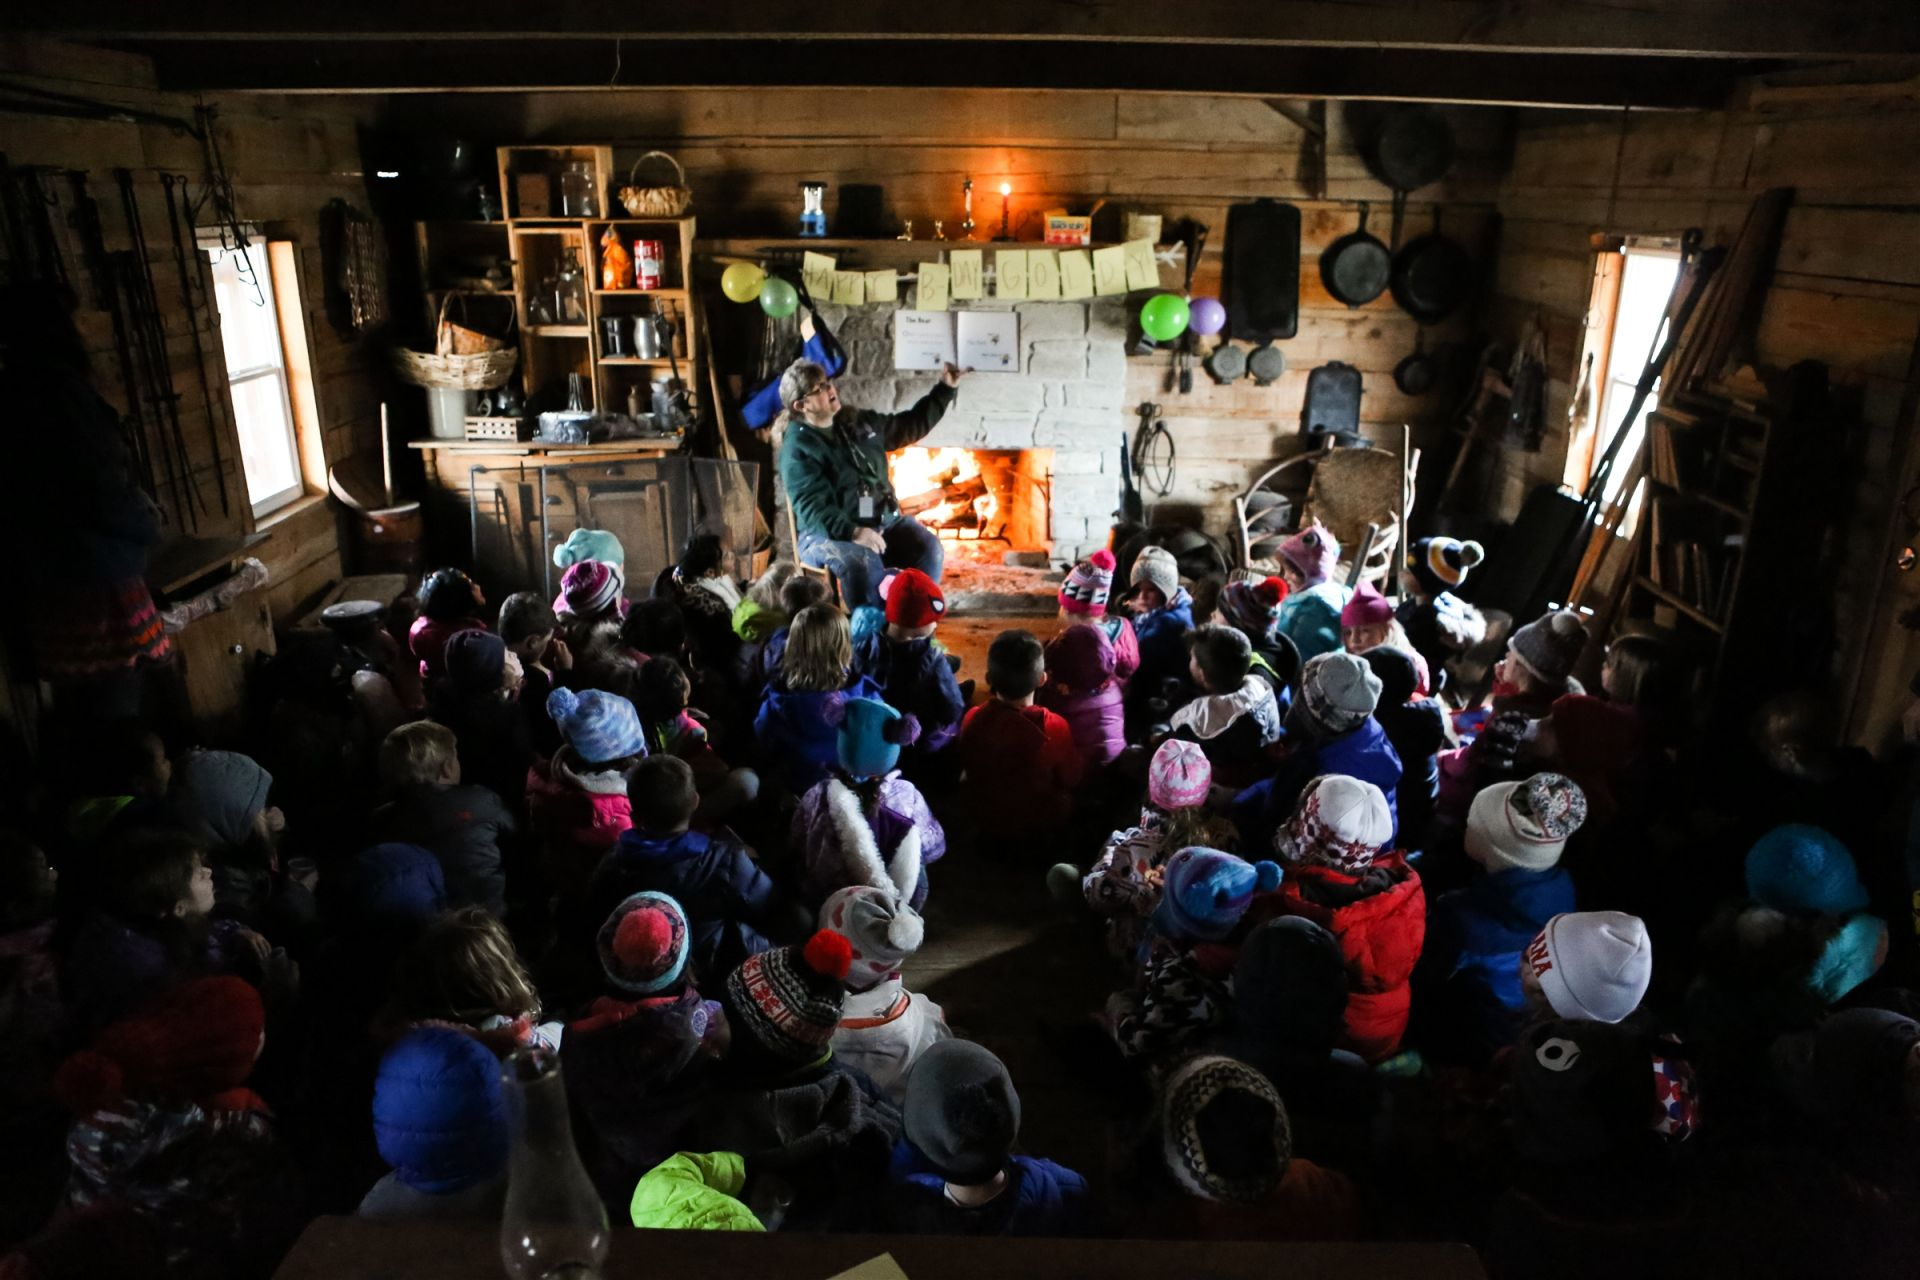 After the long journey through the woods, it was story time in the cabin with Mrs. P in honor of Goldilocks and the Three Bears birthday.